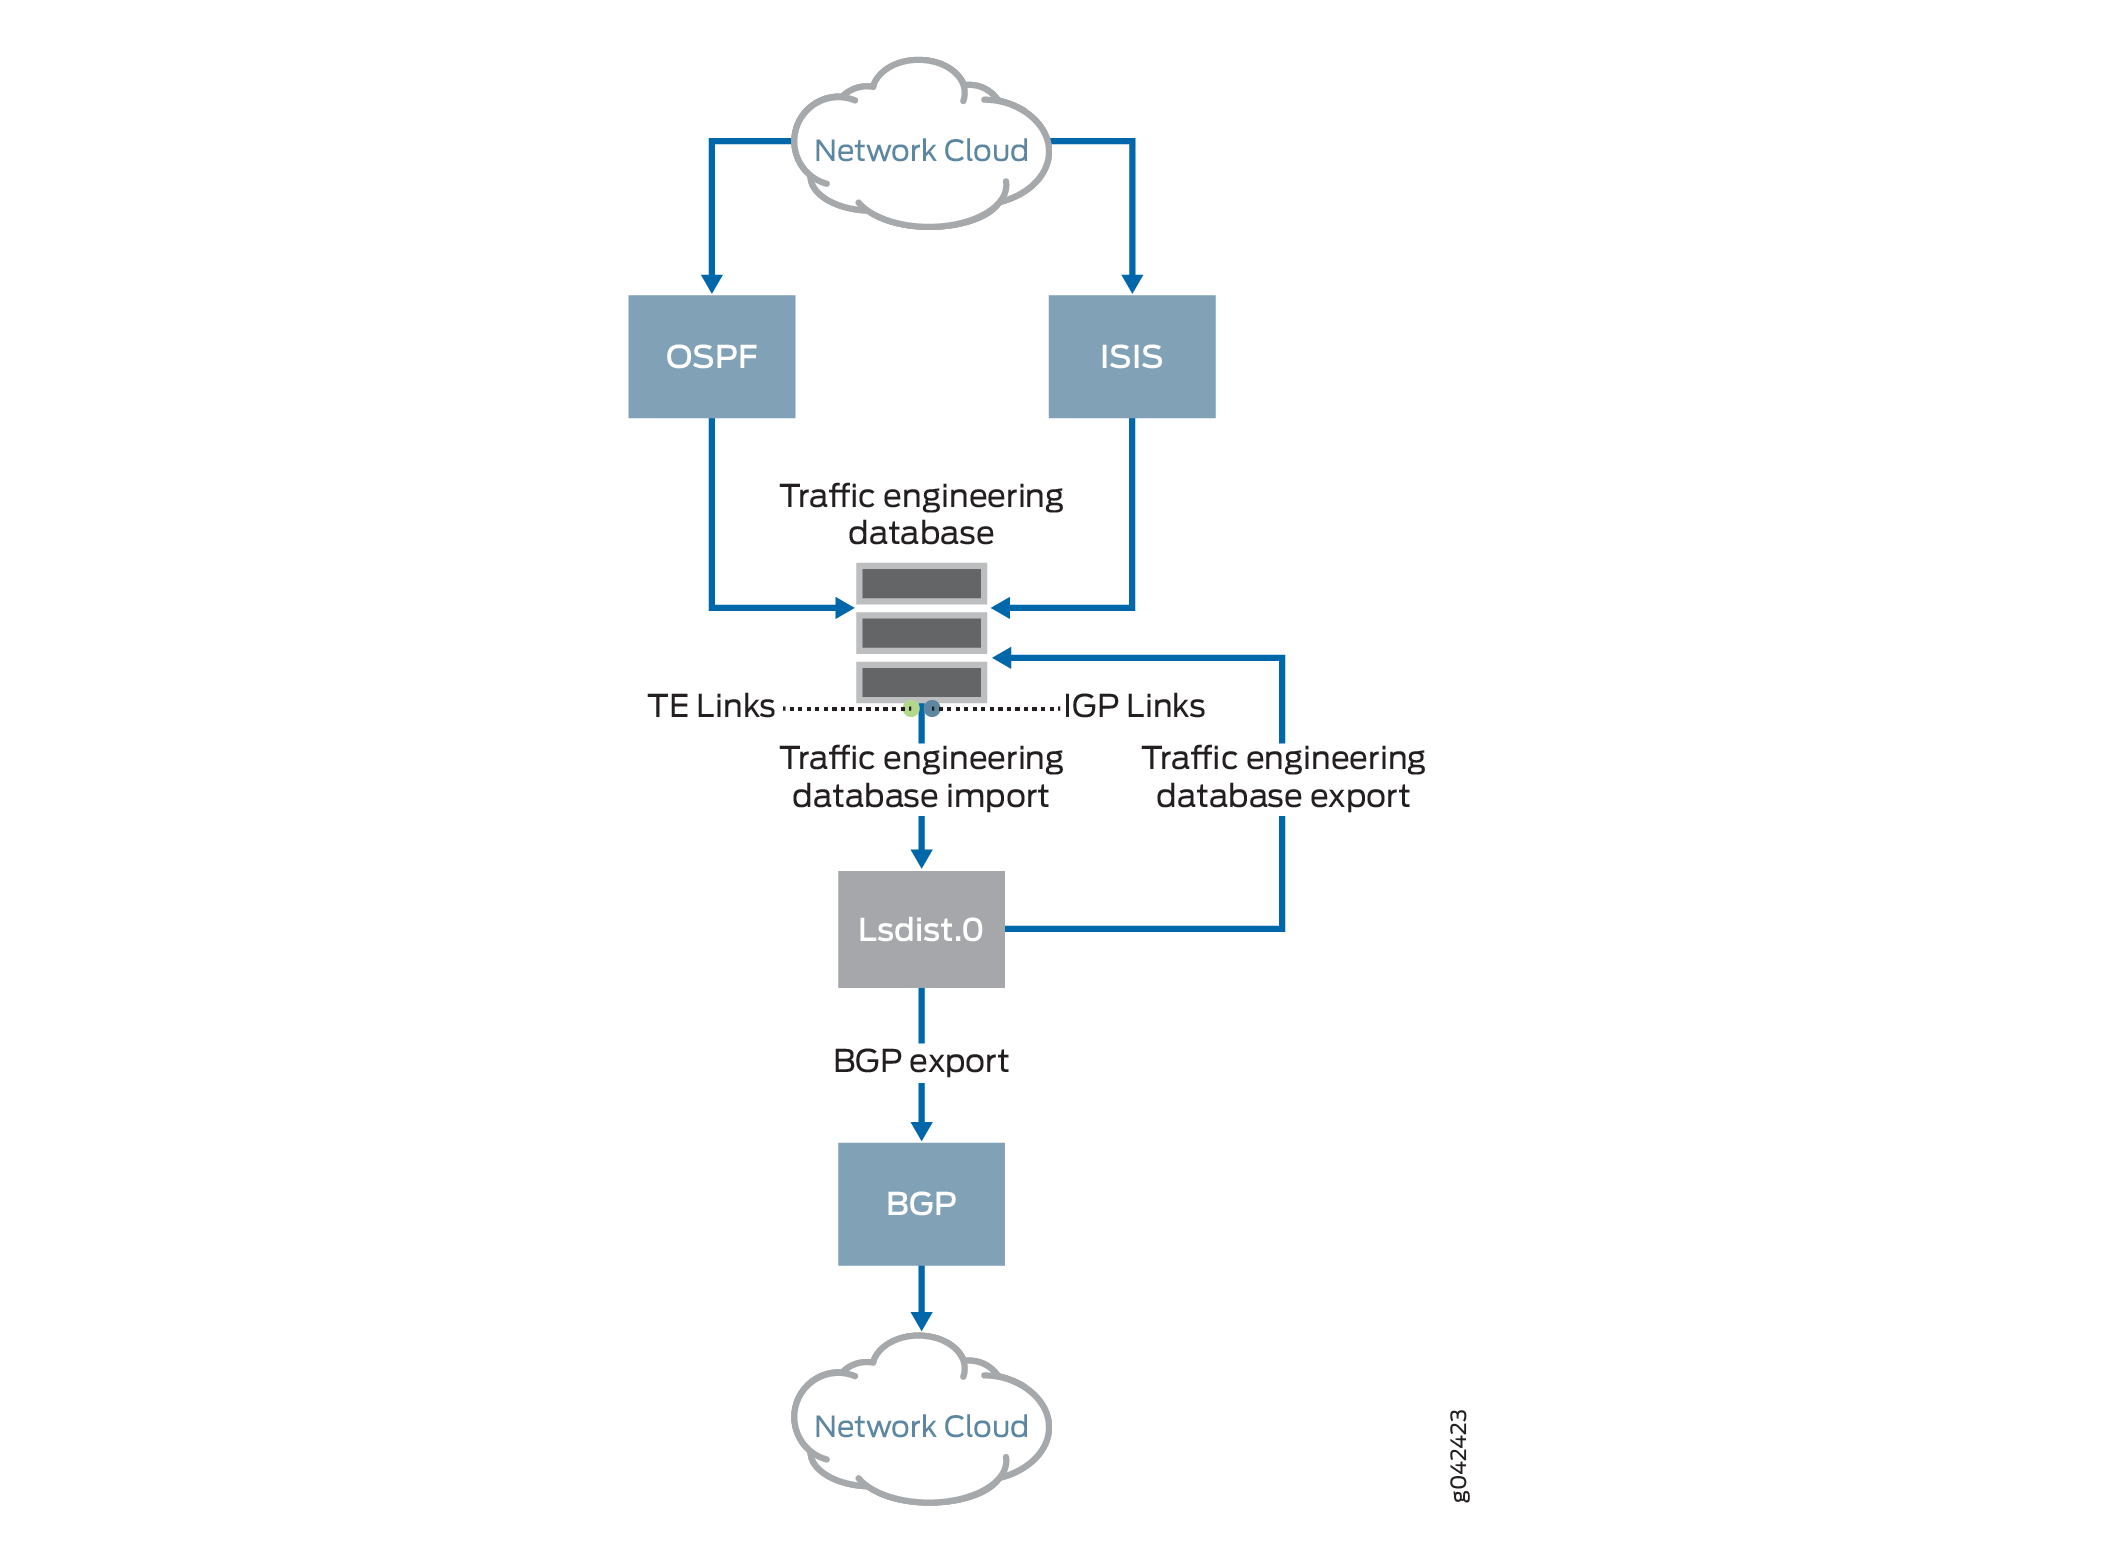 Link-State Distribution Using BGP Overview - TechLibrary